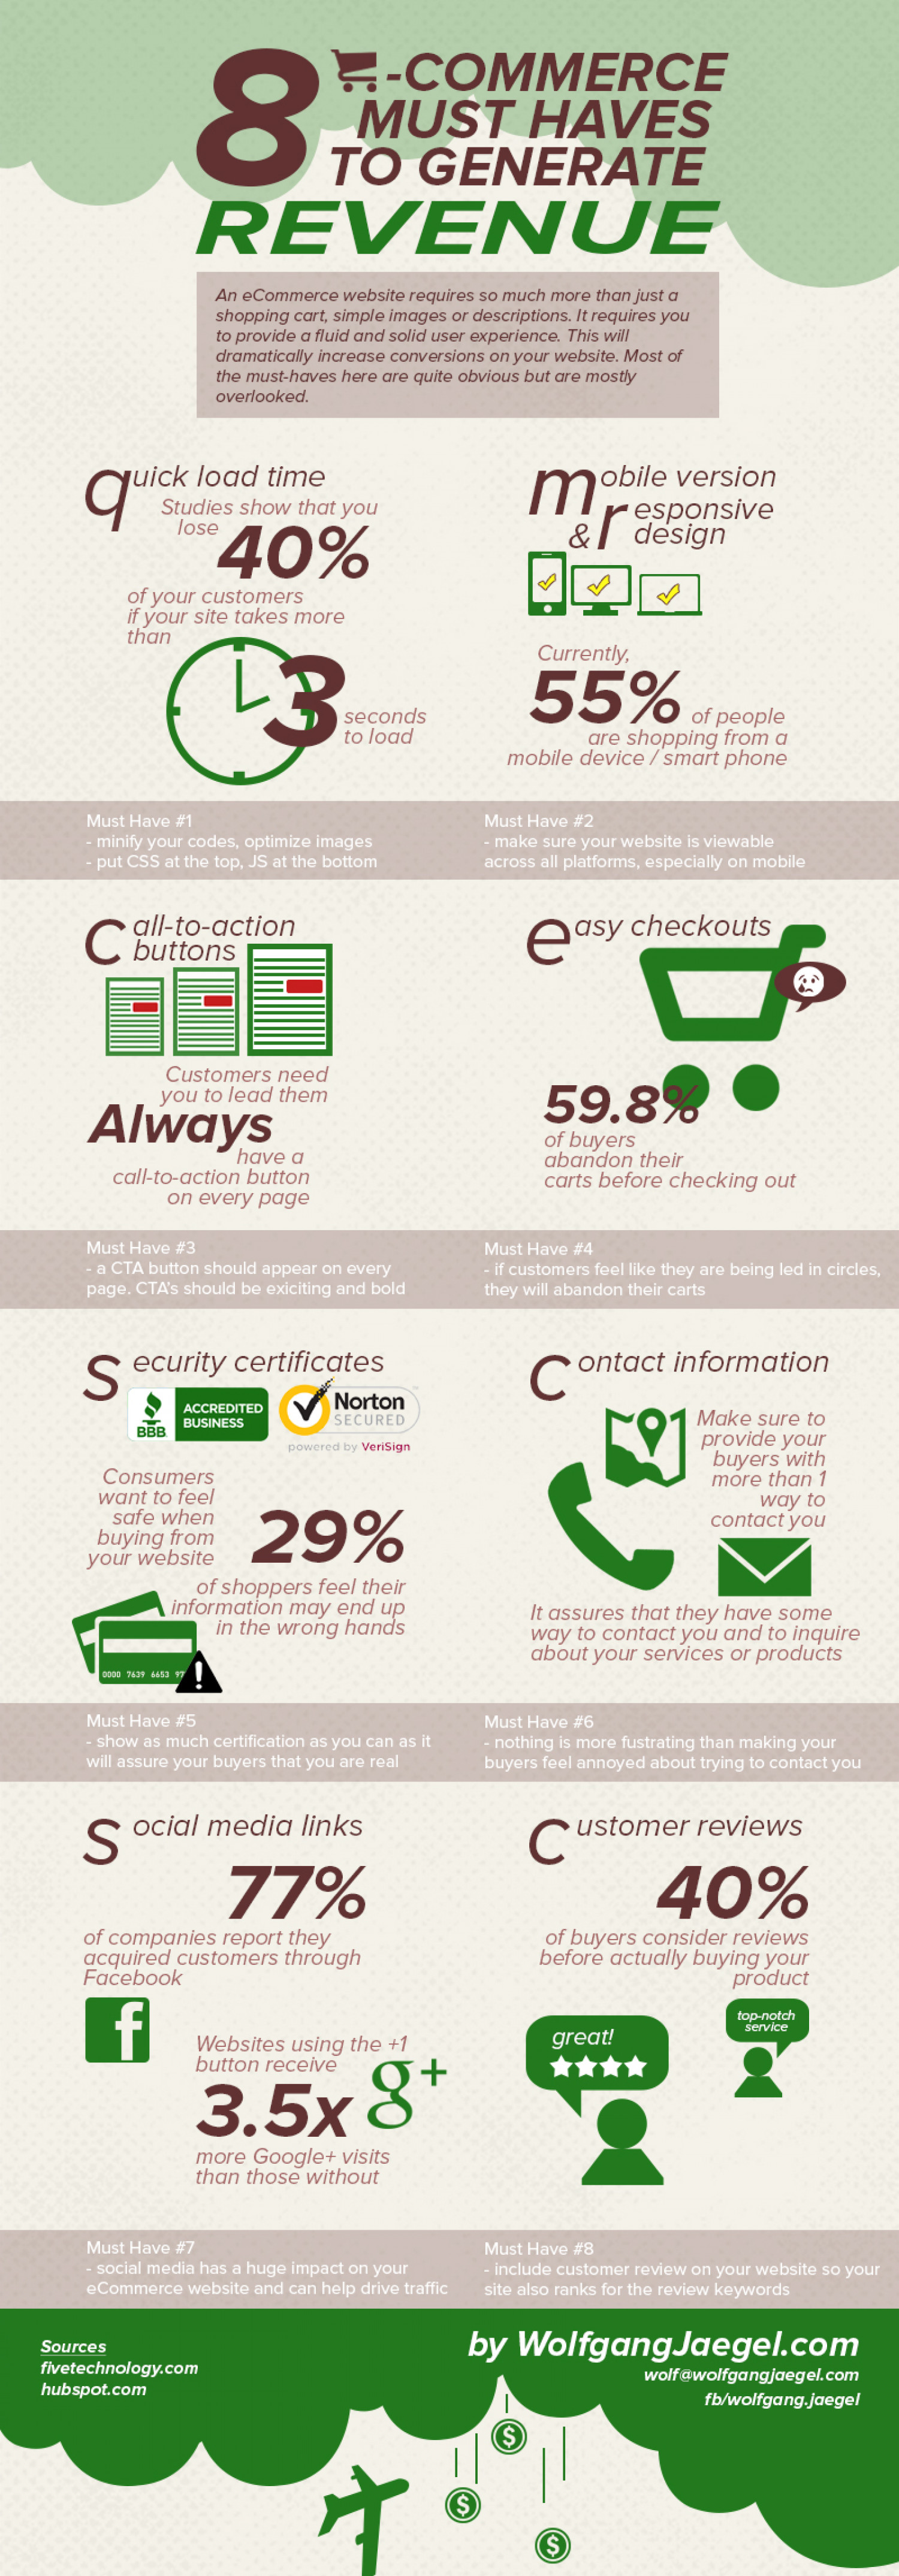 8 E-Commerce Must Haves to Generate Revenue Infographic